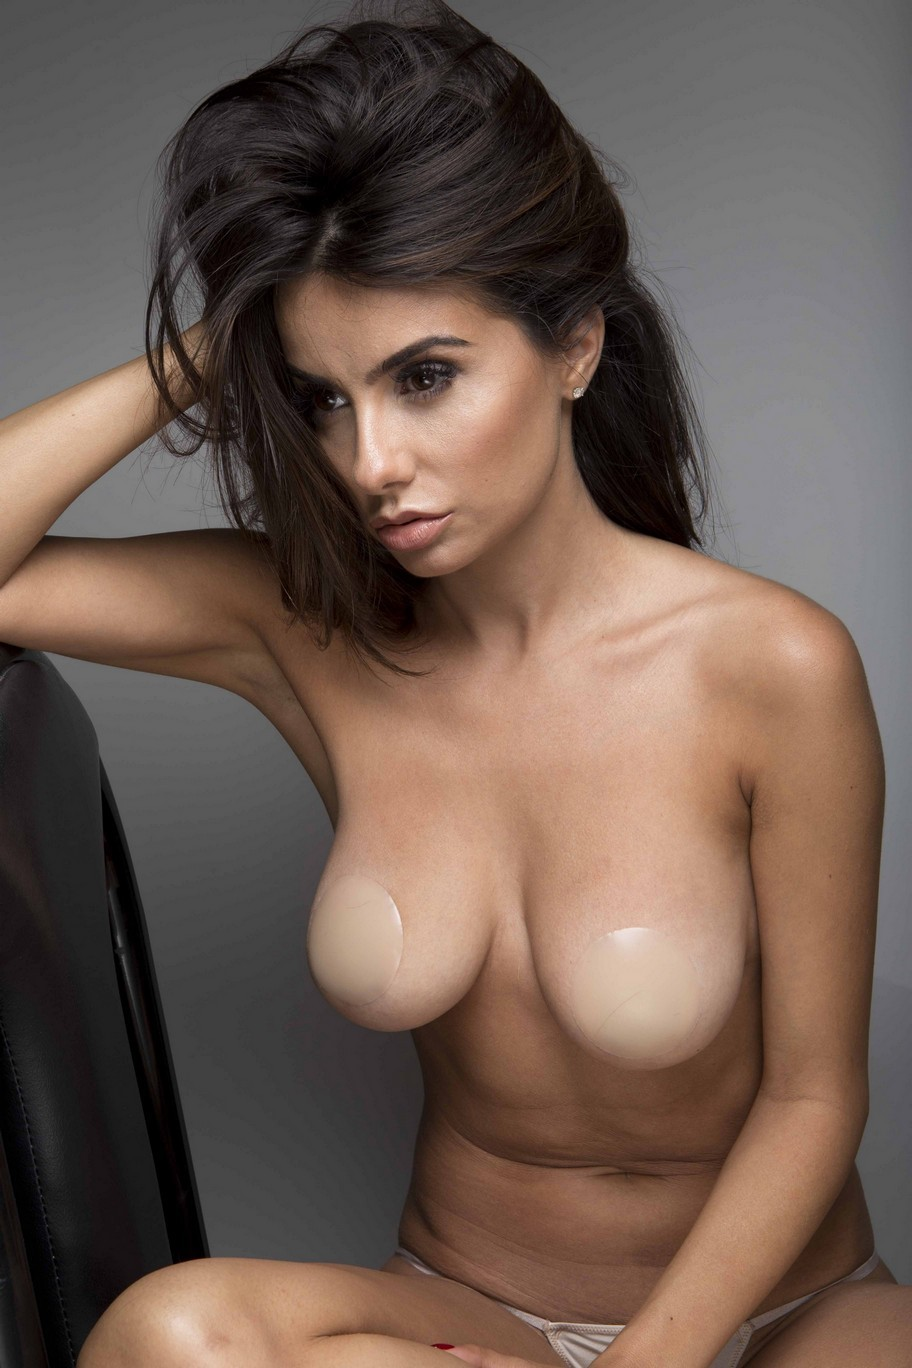 nudes (58 photos), Tits Celebrity images